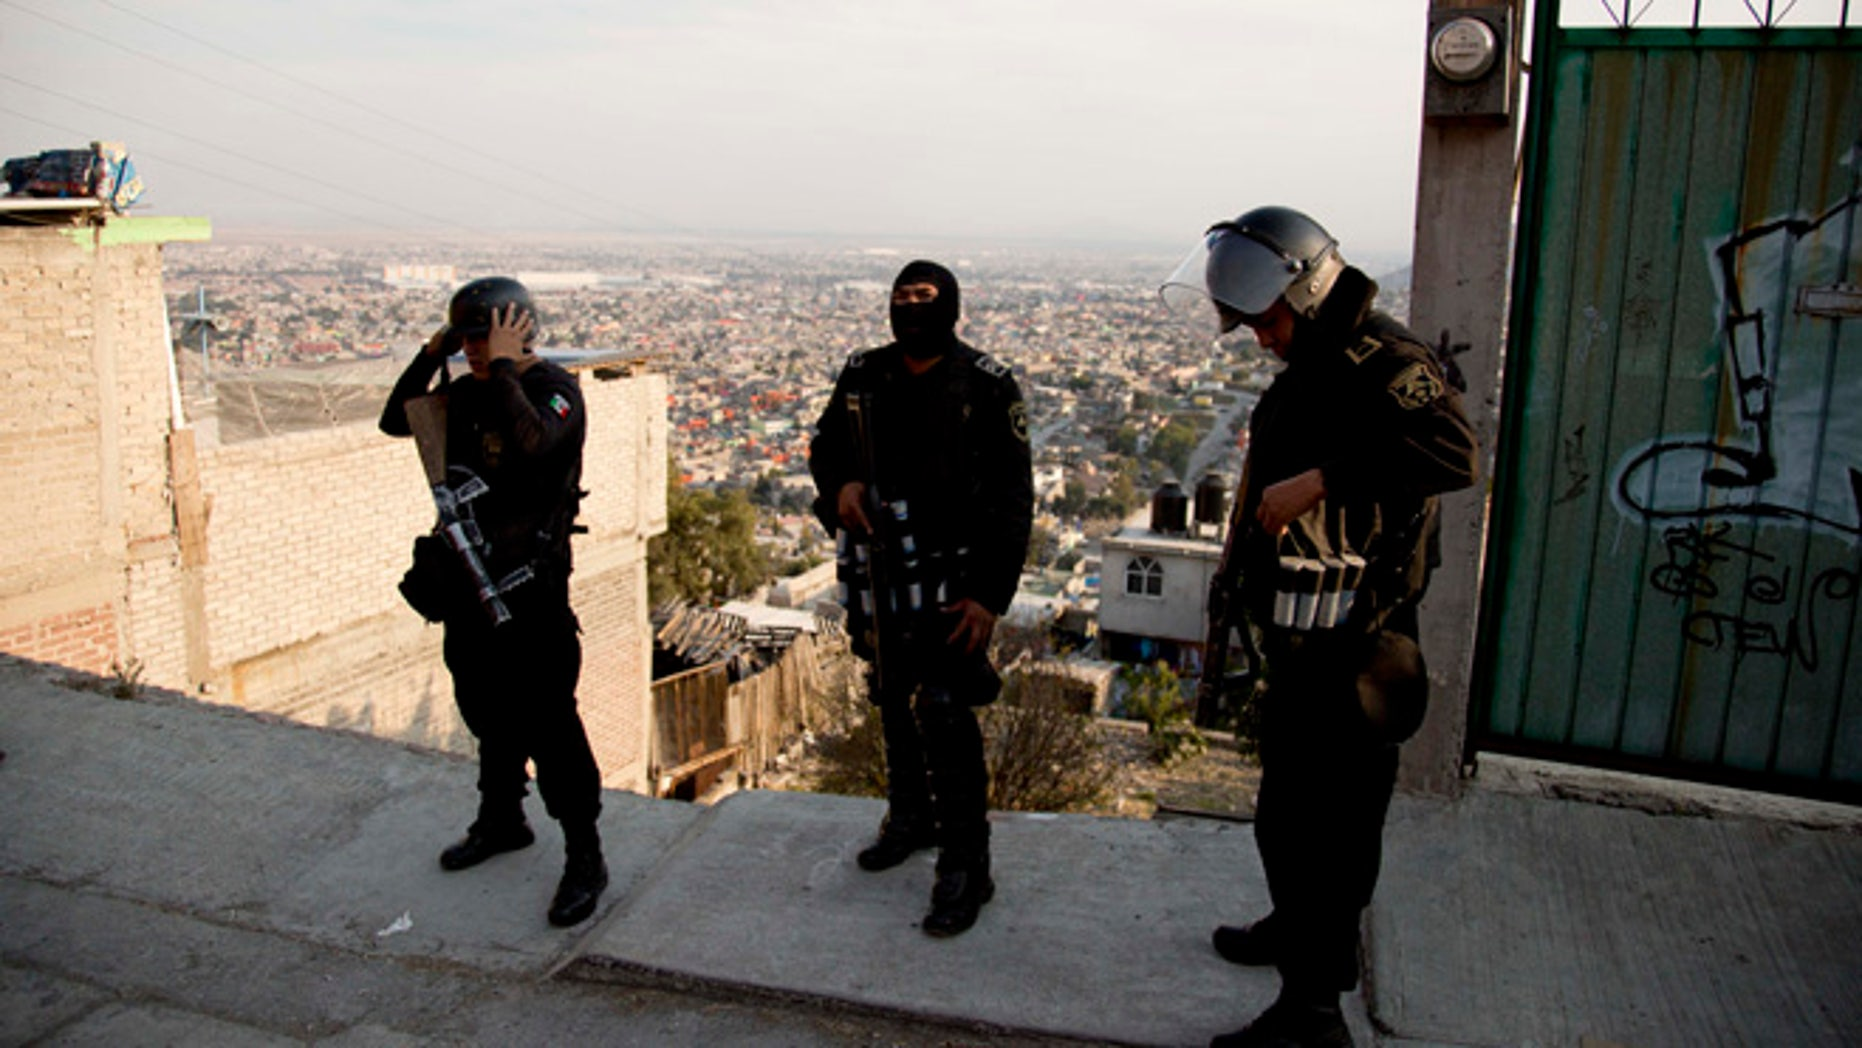 In this Jan. 19, 2015 photo, police officers prepare for an security operation in Ecatepec, a rough neighborhood on the outskirts of Mexico City. Pope Francis will hold the largest public event of his visit to Mexico when he celebrates Mass on an outdoor esplanade in Ecatepec on Feb. 14, 2016. (AP Photo/Eduardo Verdugo)